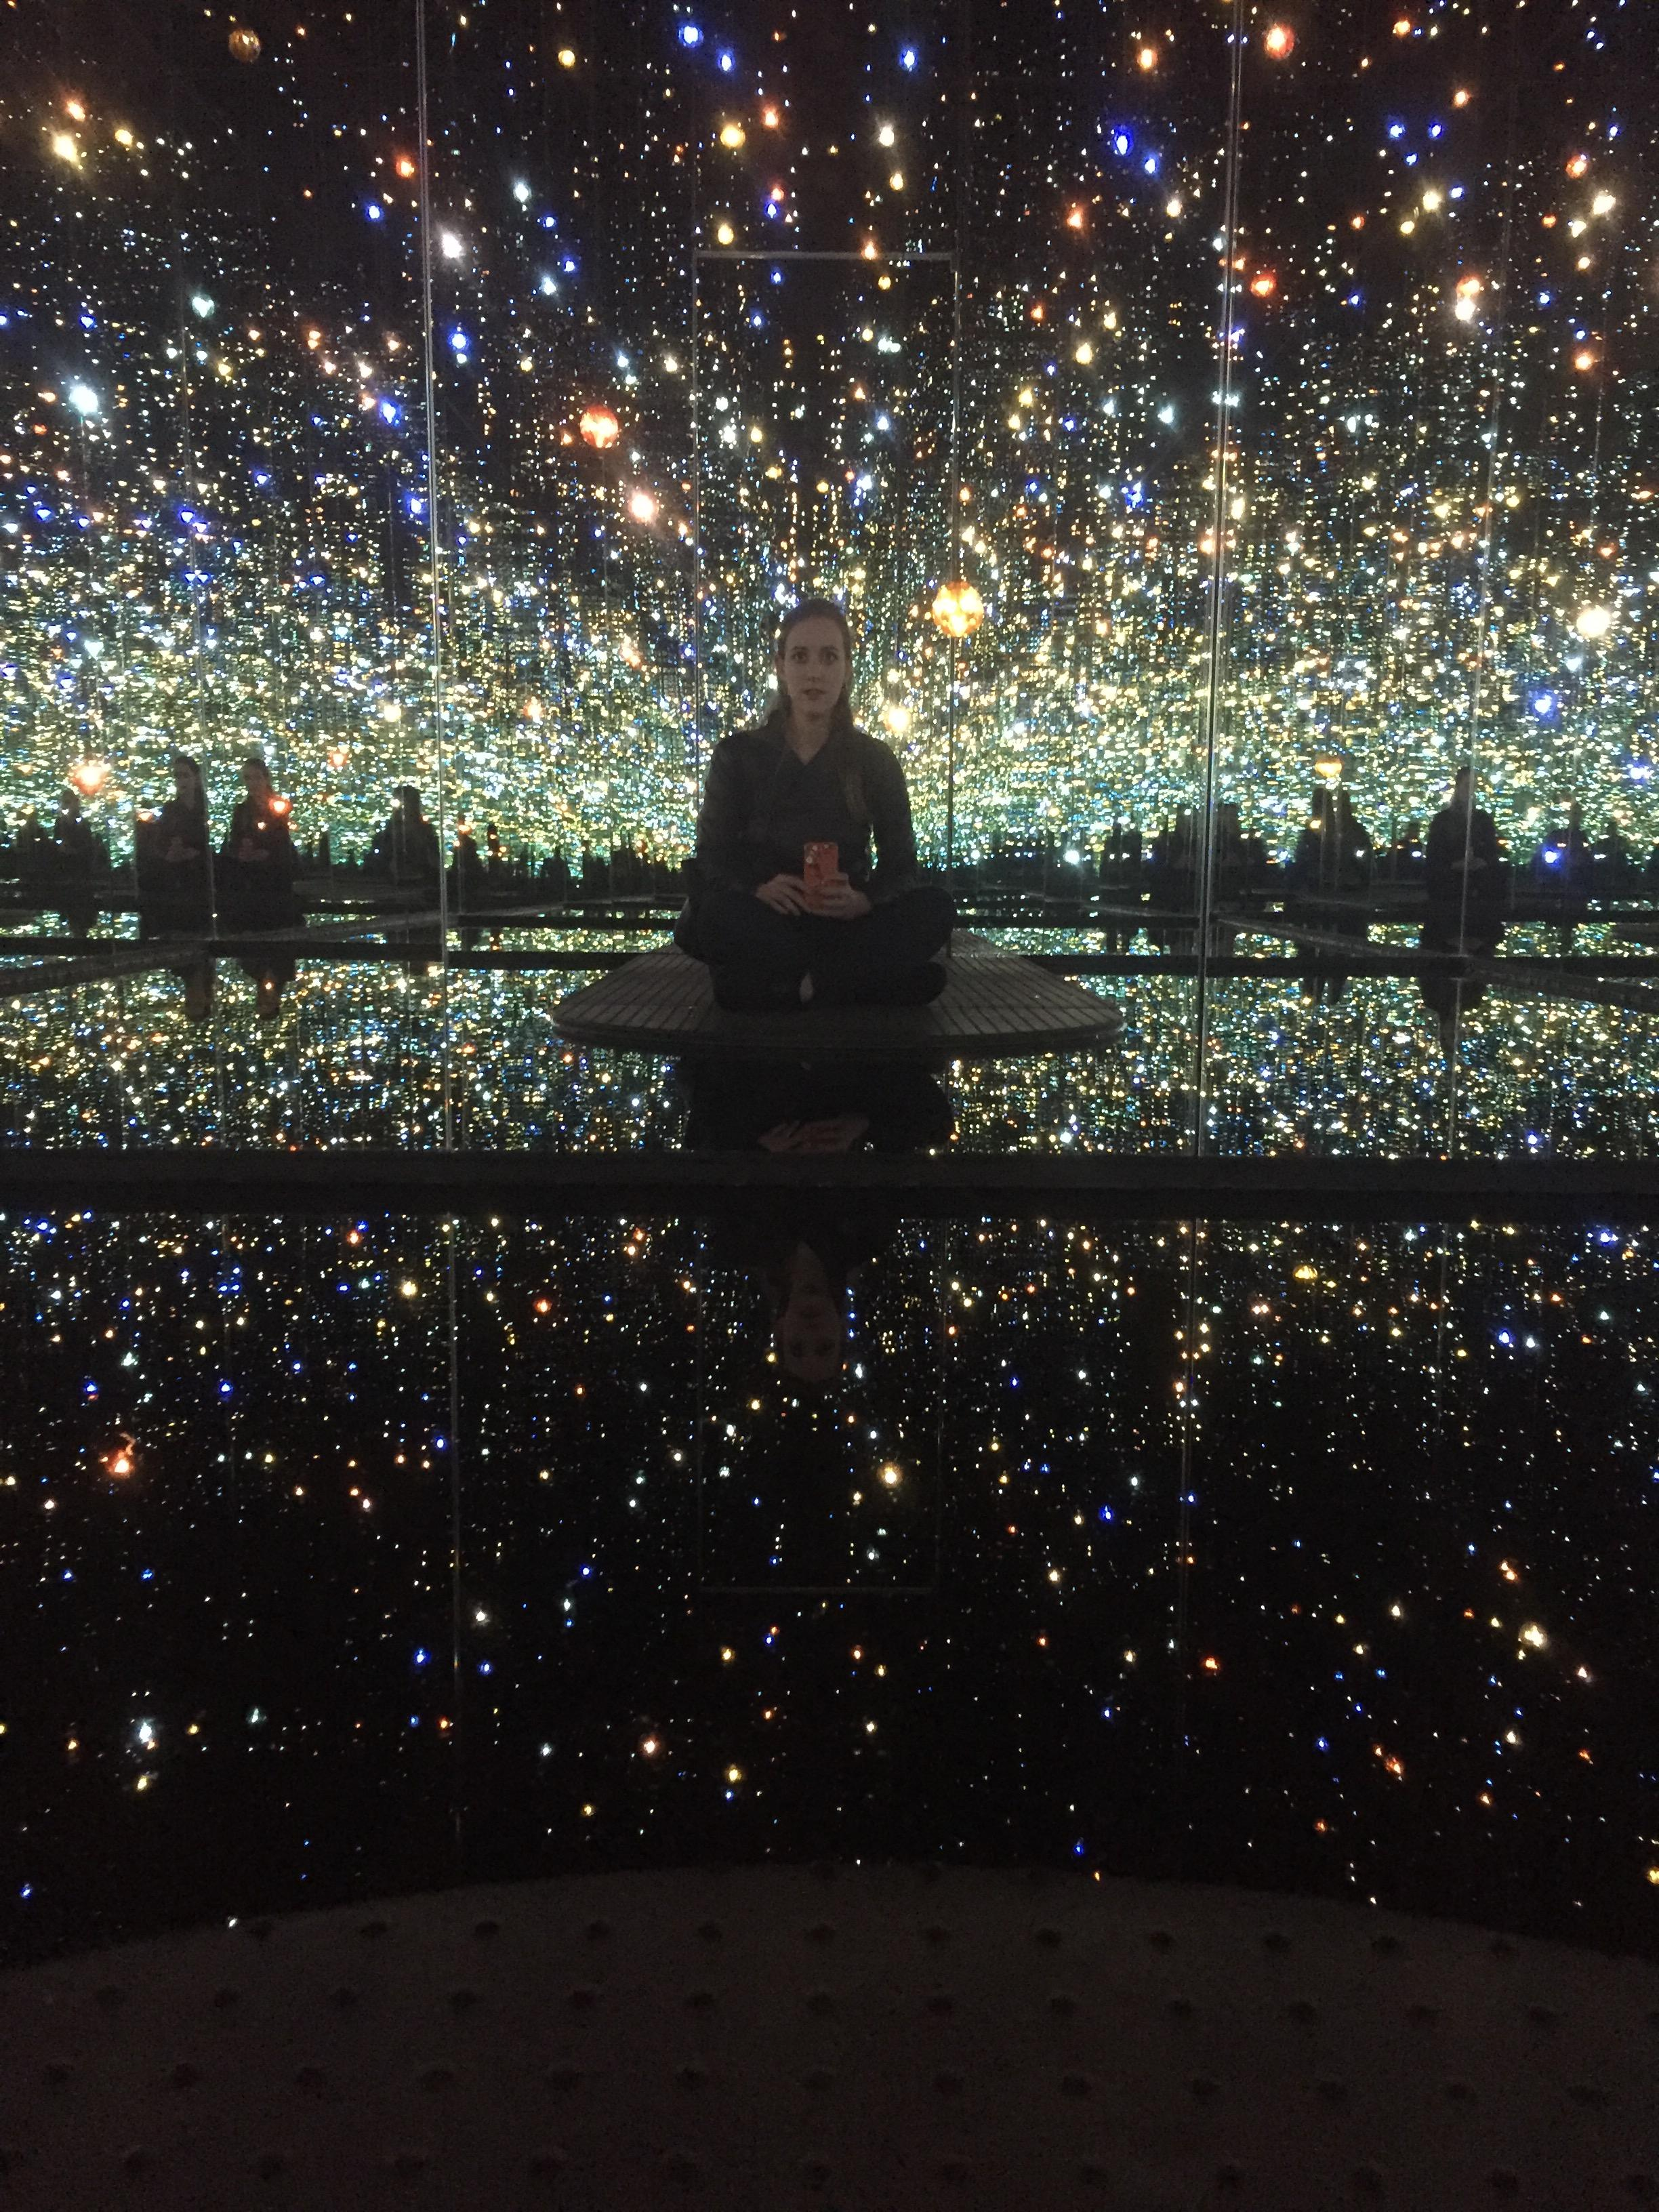 Carolyn in an Infinity Mirrored Room